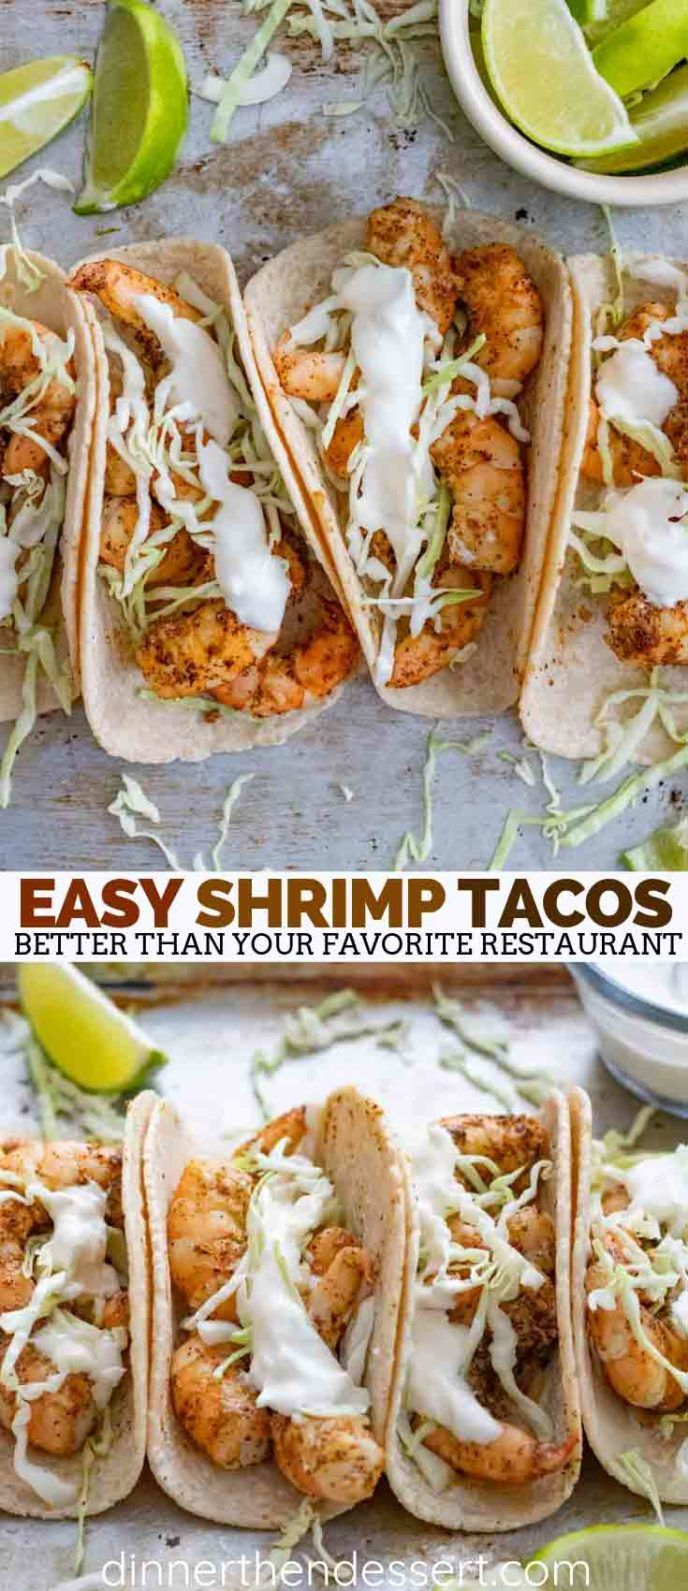 Shrimp tacos made with taco seasoning and topped with cabbage and sour cream are a quick and easy dinner that is perfect for healthy weeknight meals! #shrimp #shrimptacos #tacos #mexican #mexicanfood #easyrecipes #dinner #quickrecipes #weeknightmeals #dinnerthendessert #shrimpseasoning